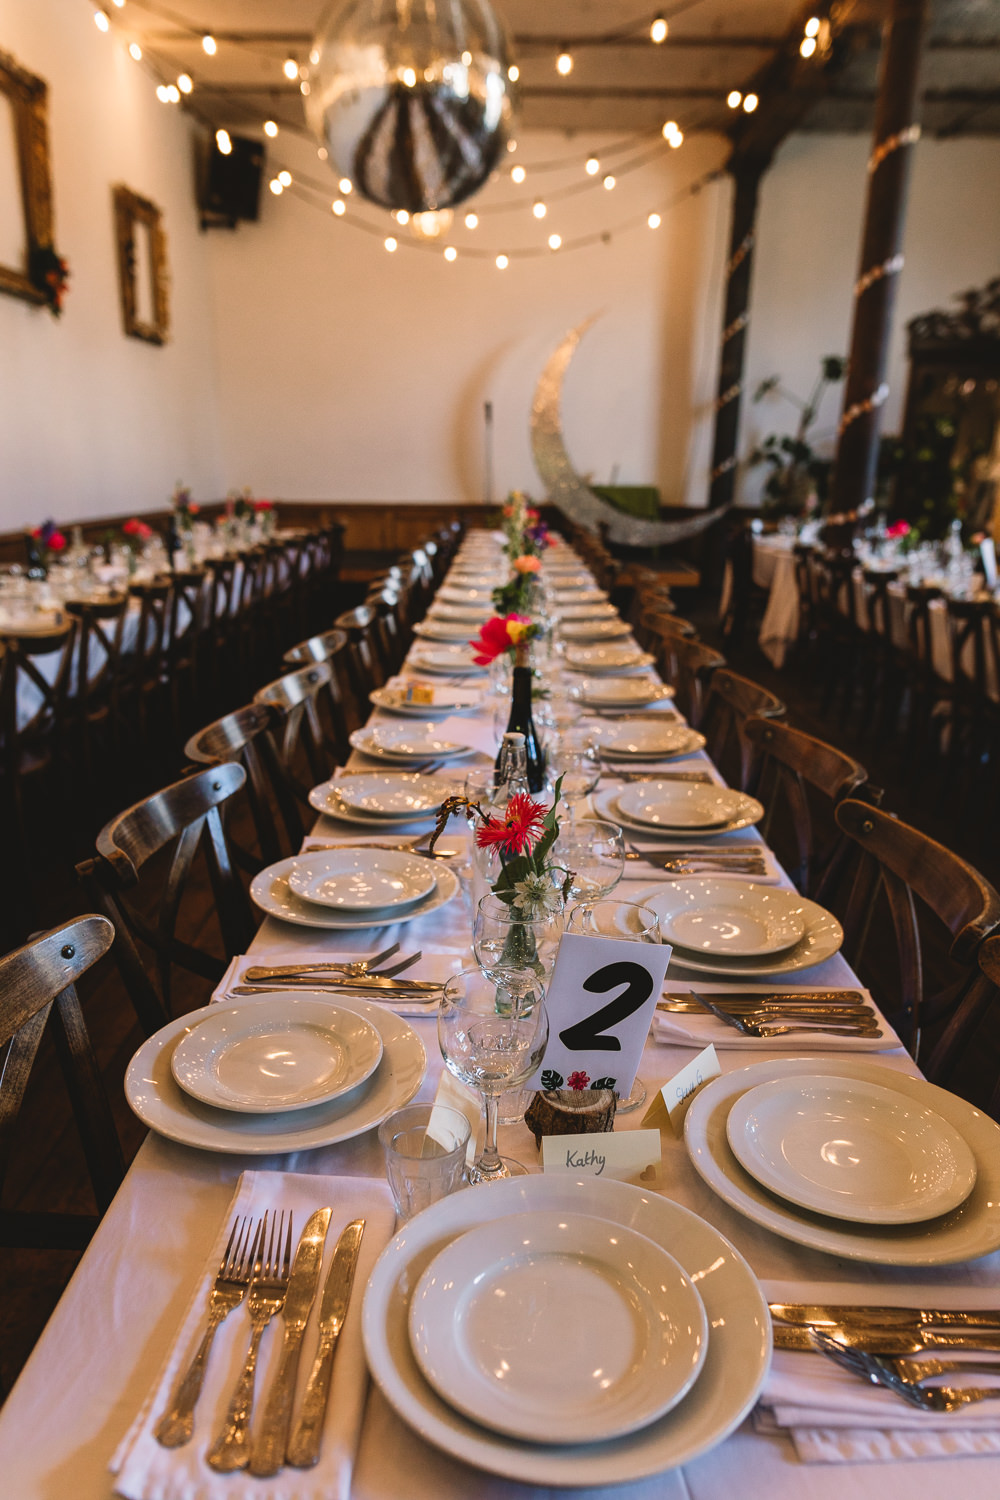 Feasting Tables Bottle Bud Vase Floral Clapton Country Club Wedding Kate Jackson Photography